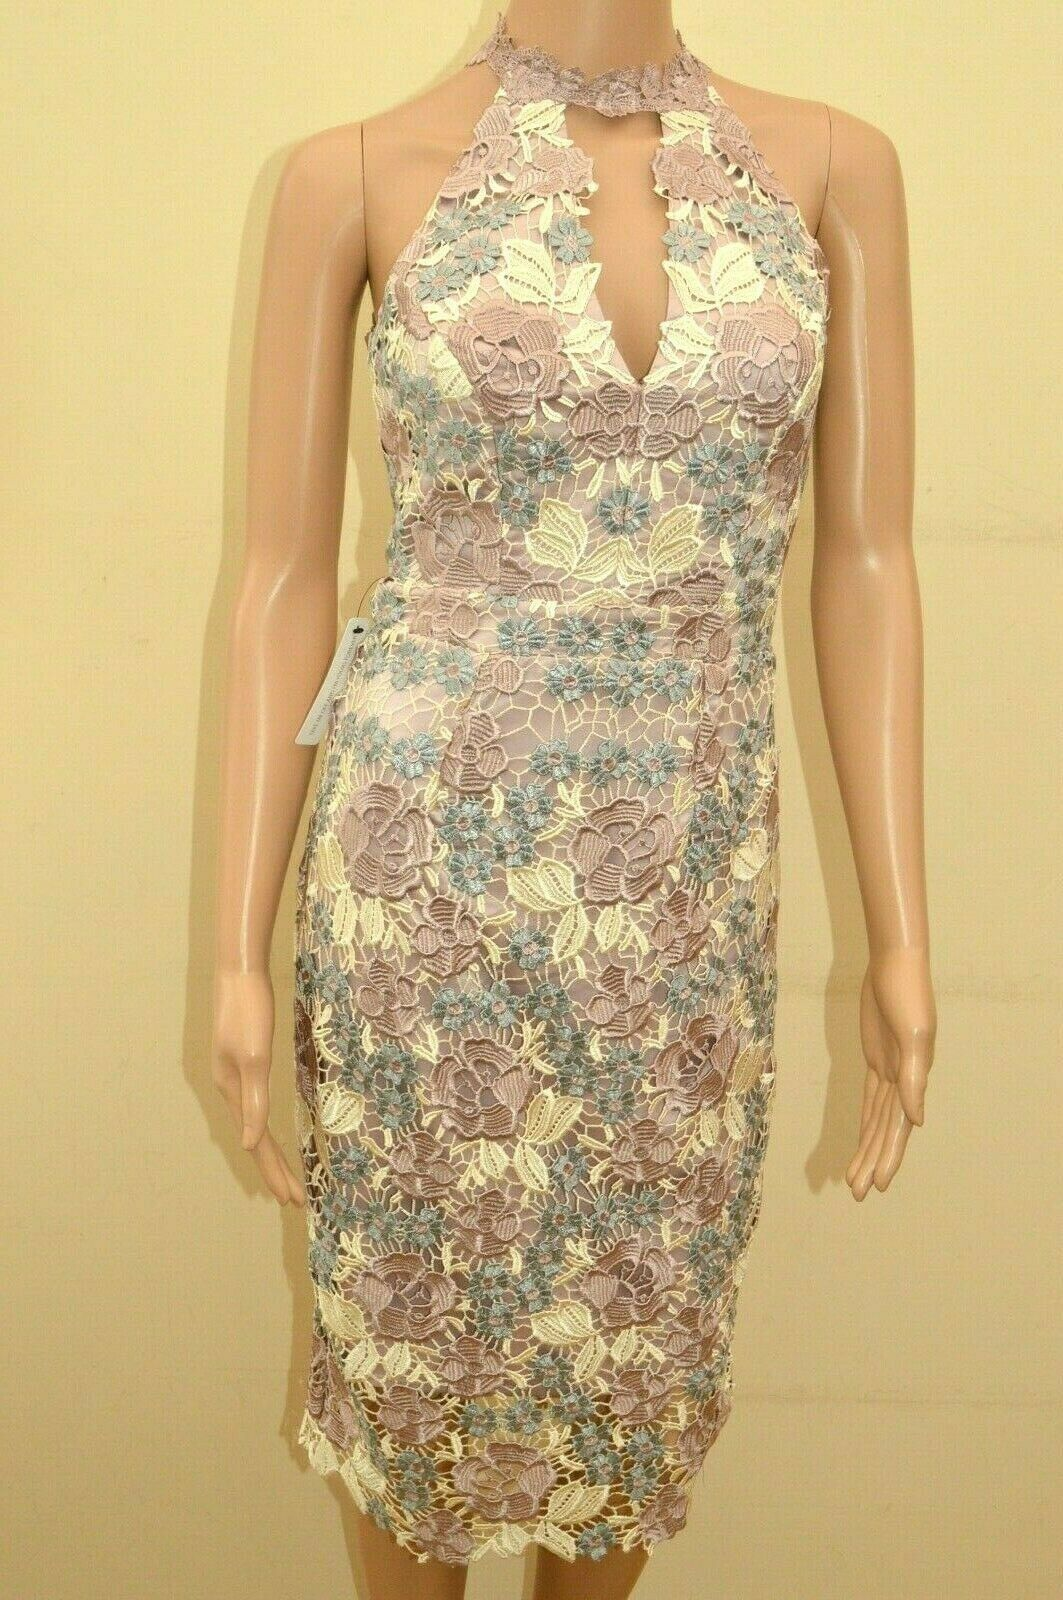 New Lipsy VIP Floral Lace High Neck Lilac Blau Dress Sz UK 6